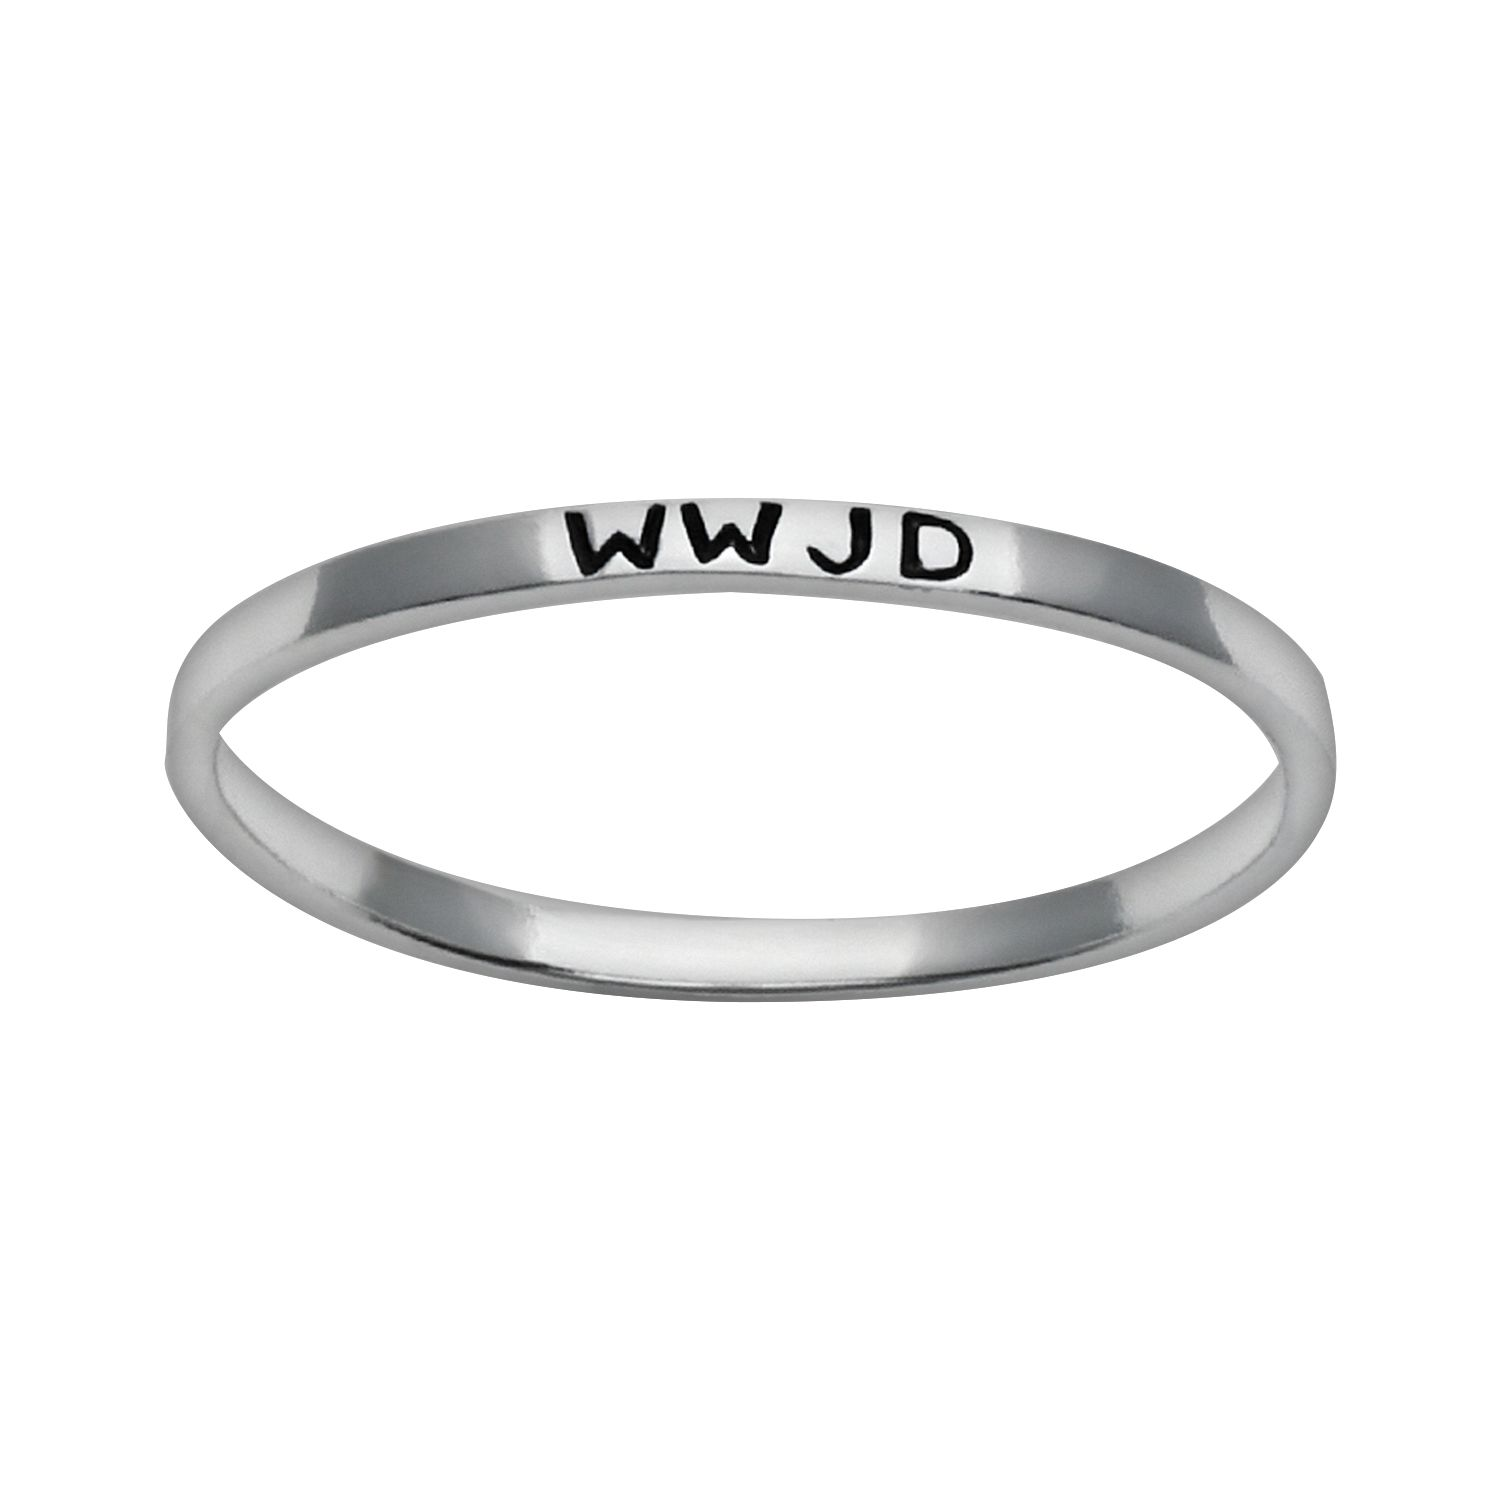 Sterling silver wwjd ring for Kohls fine jewelry coupon